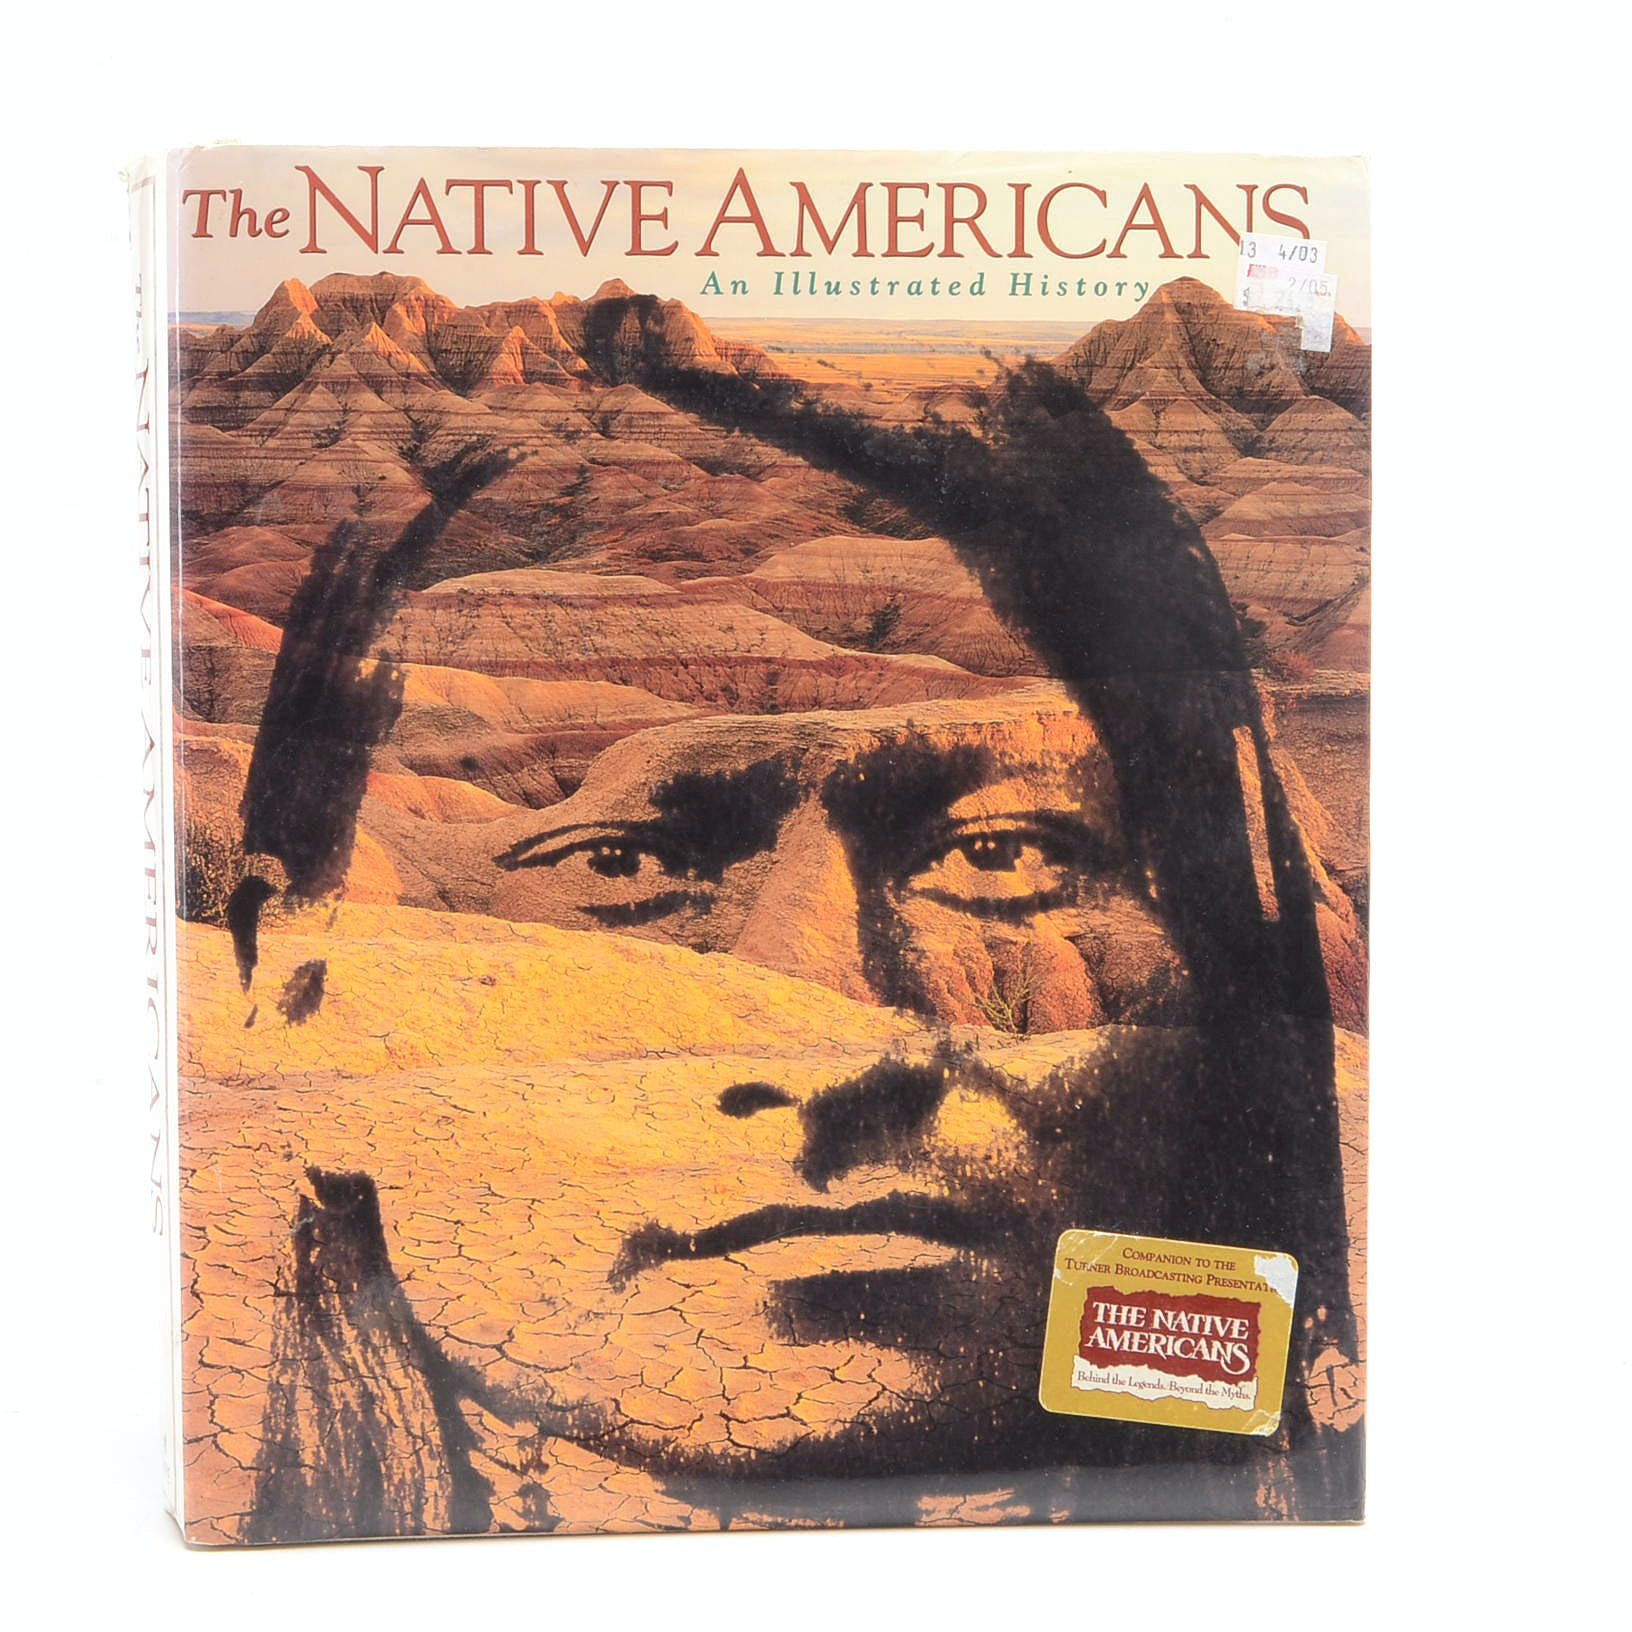 An Illustrated History of the Native Americans